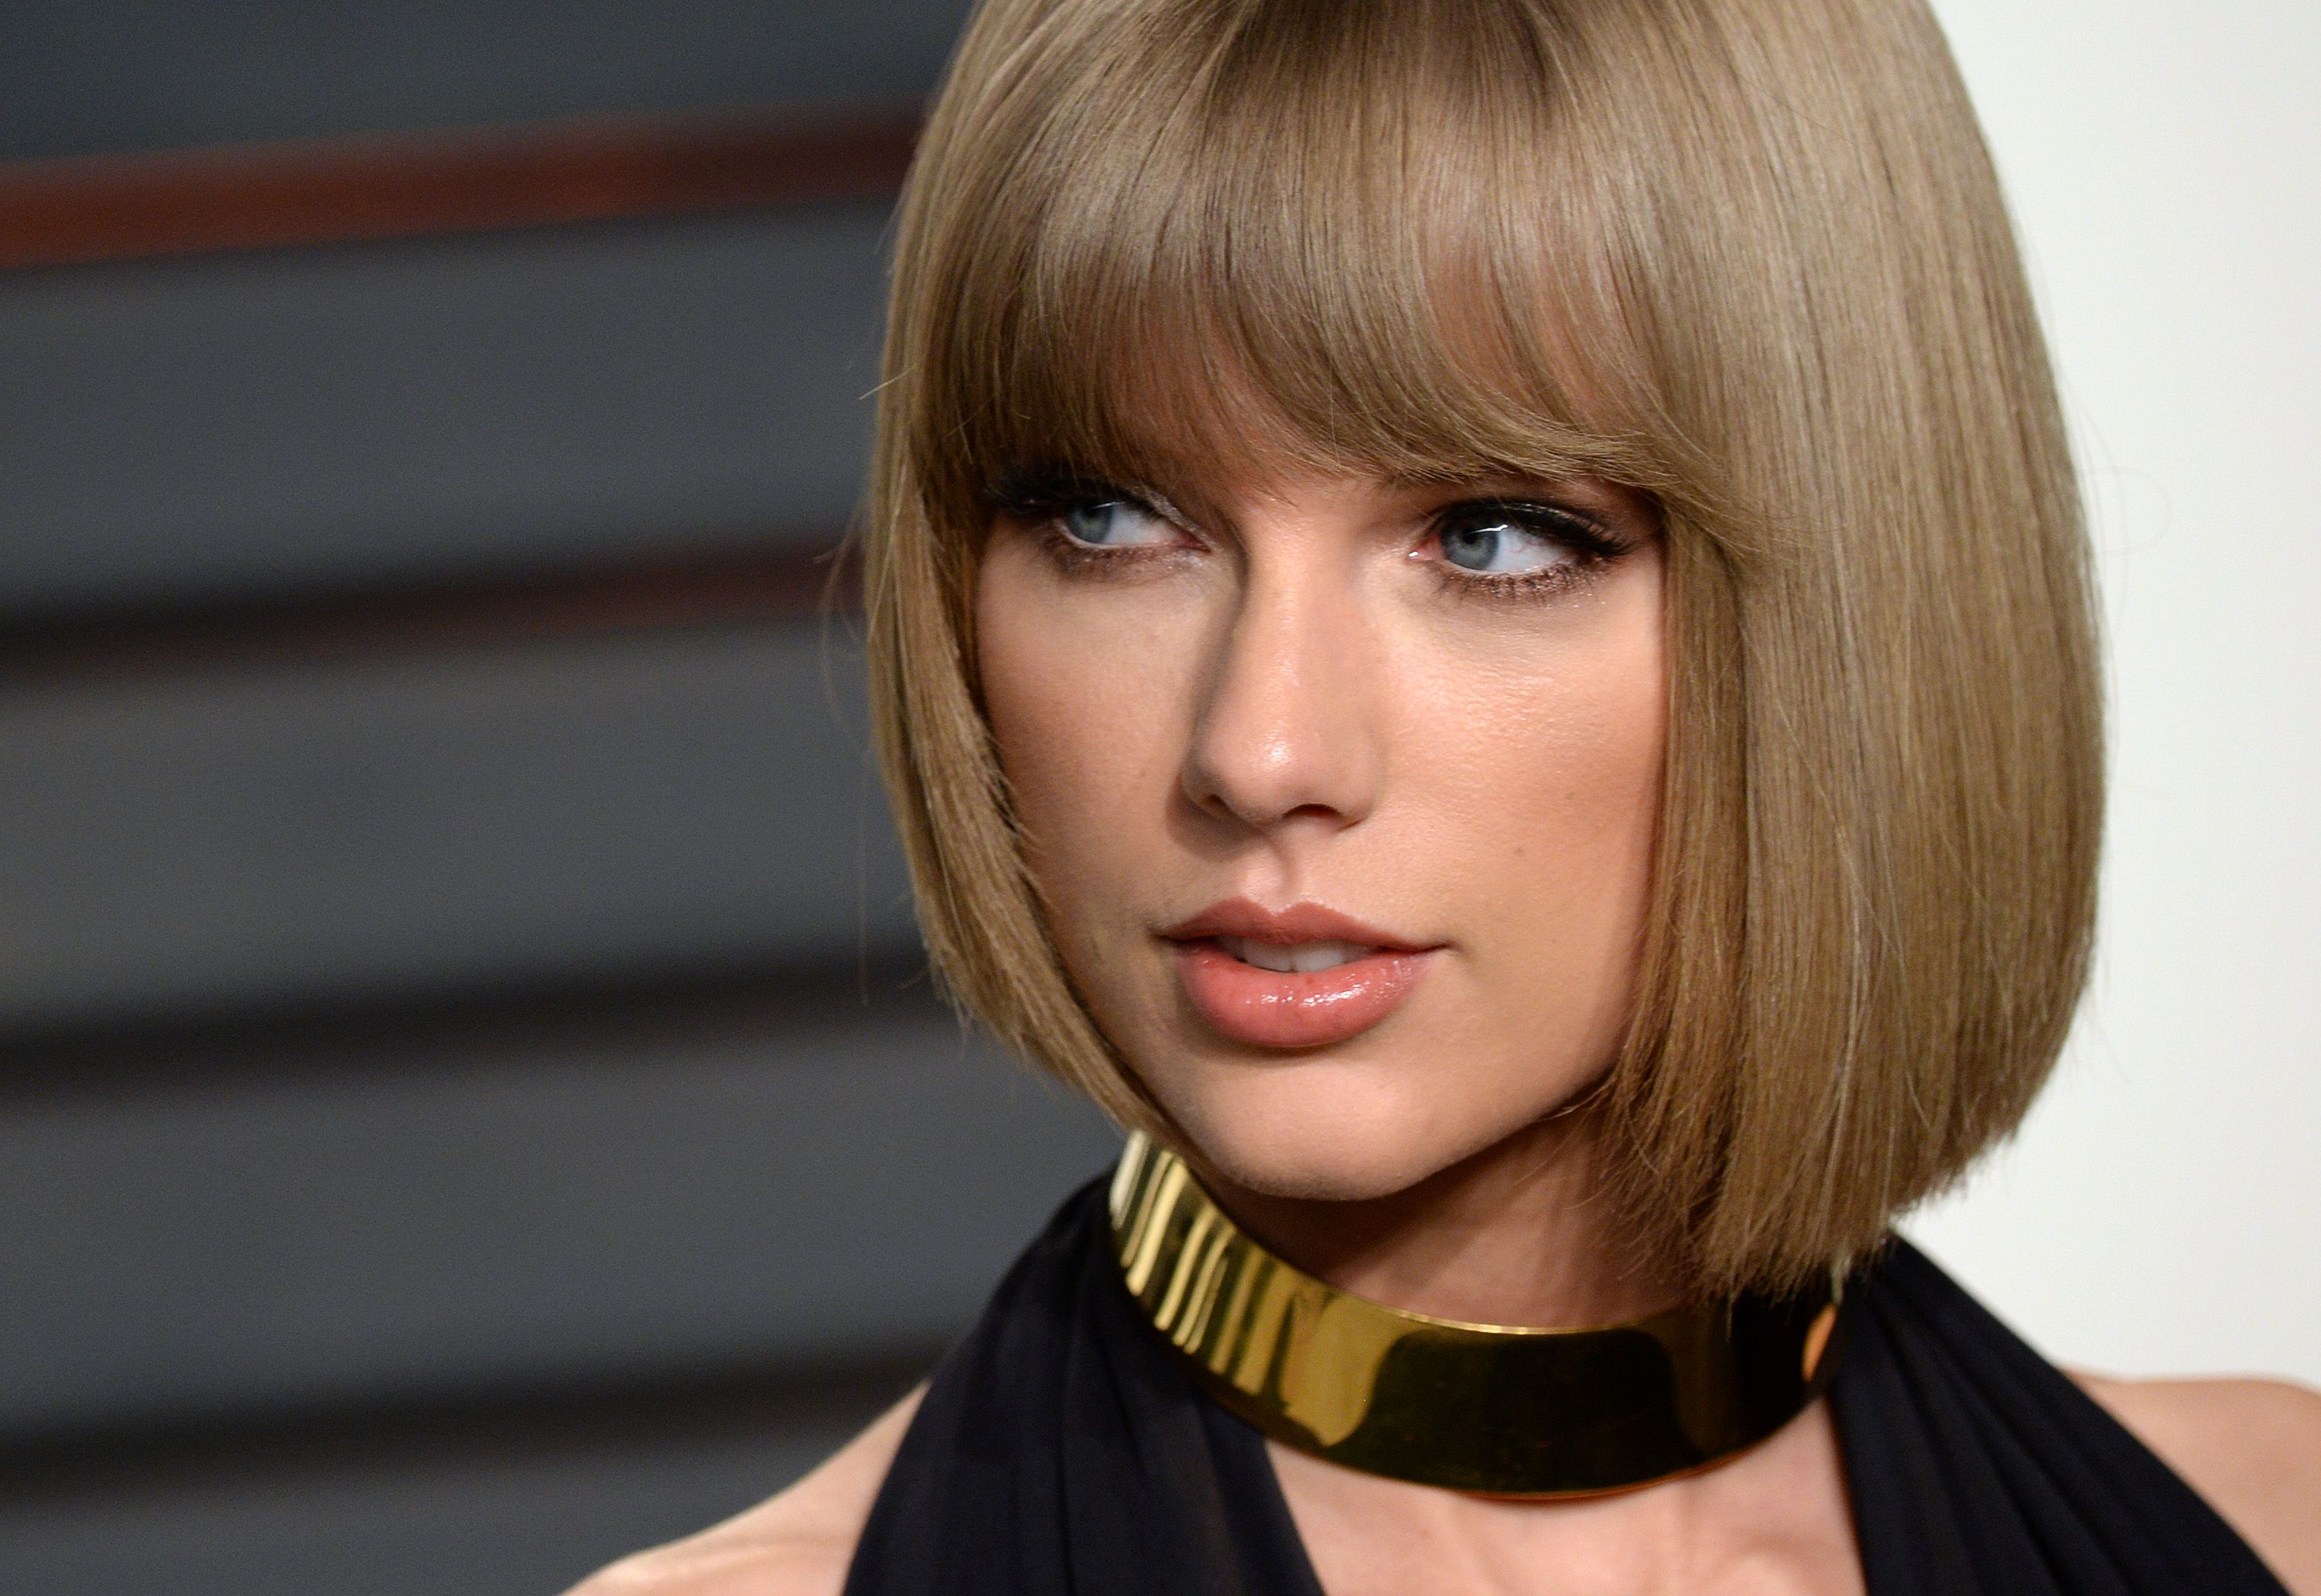 How Taylor Swift Feels About the Backlash She's Getting for Her Scooter Braun Statement